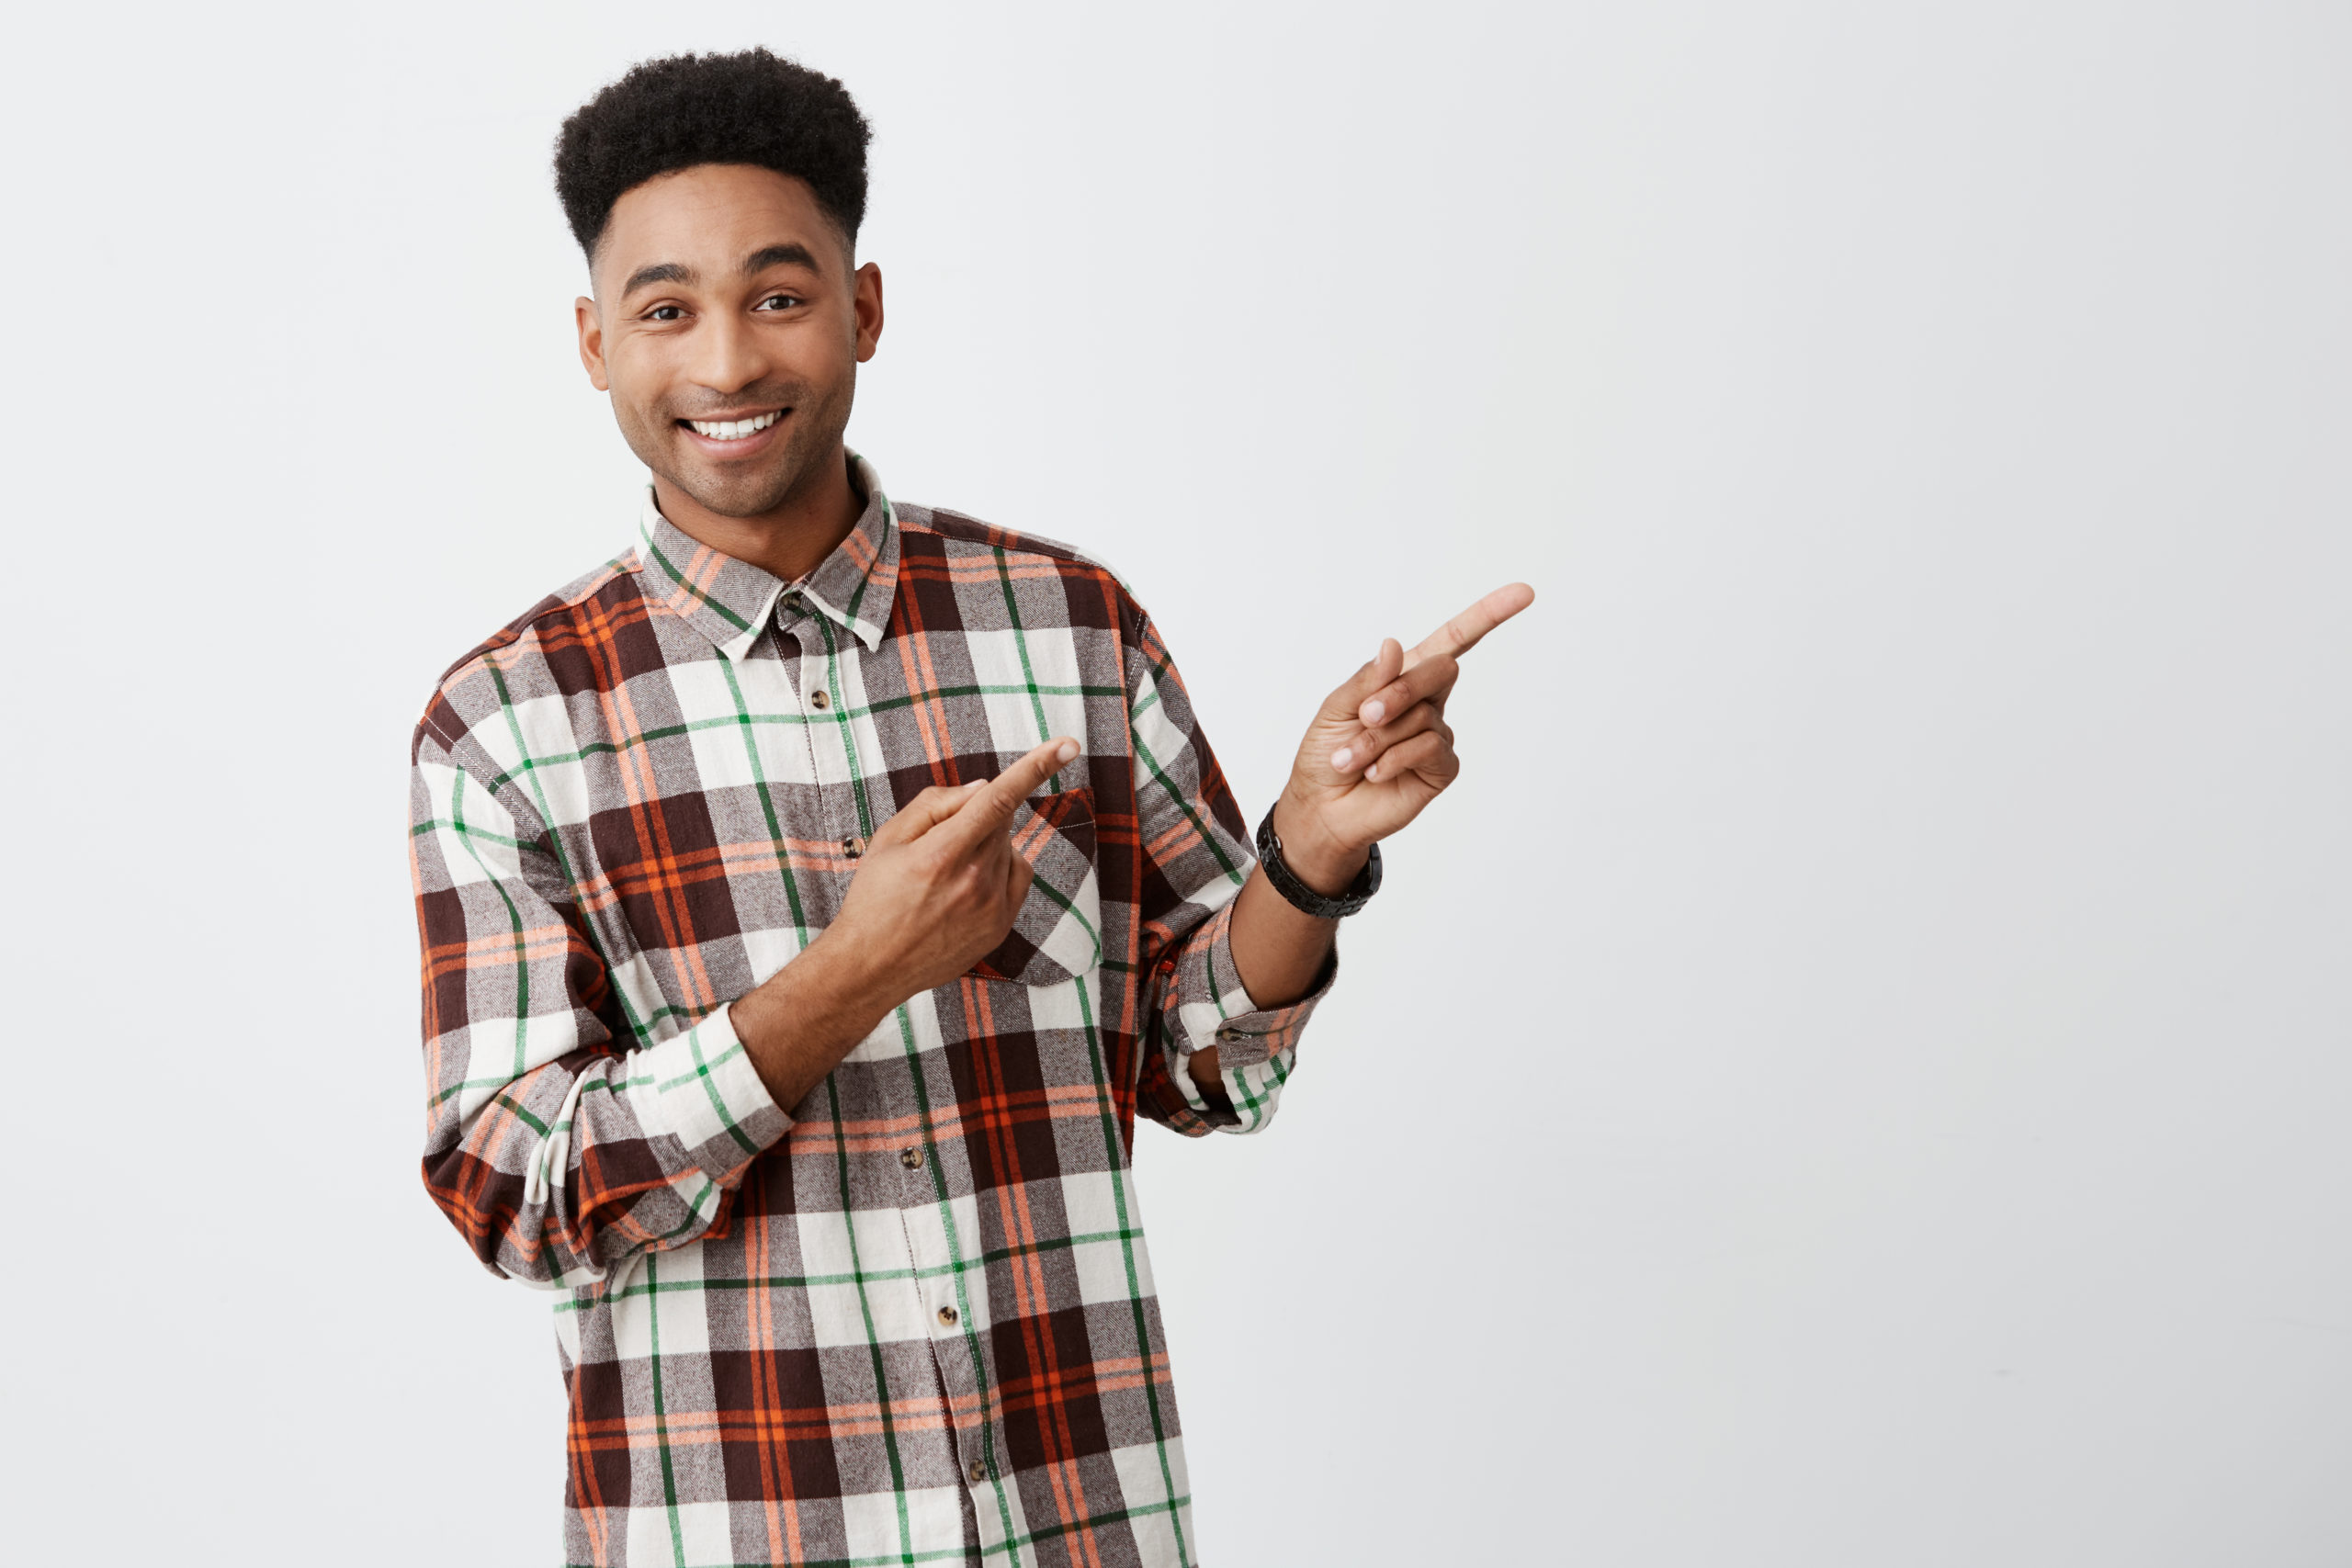 Close up portrait of young good-looking dark-skinned man with stylish dark afro hair in checkered shirt smiling with teeth, pointing aside won white wall with happy and joyful expression.